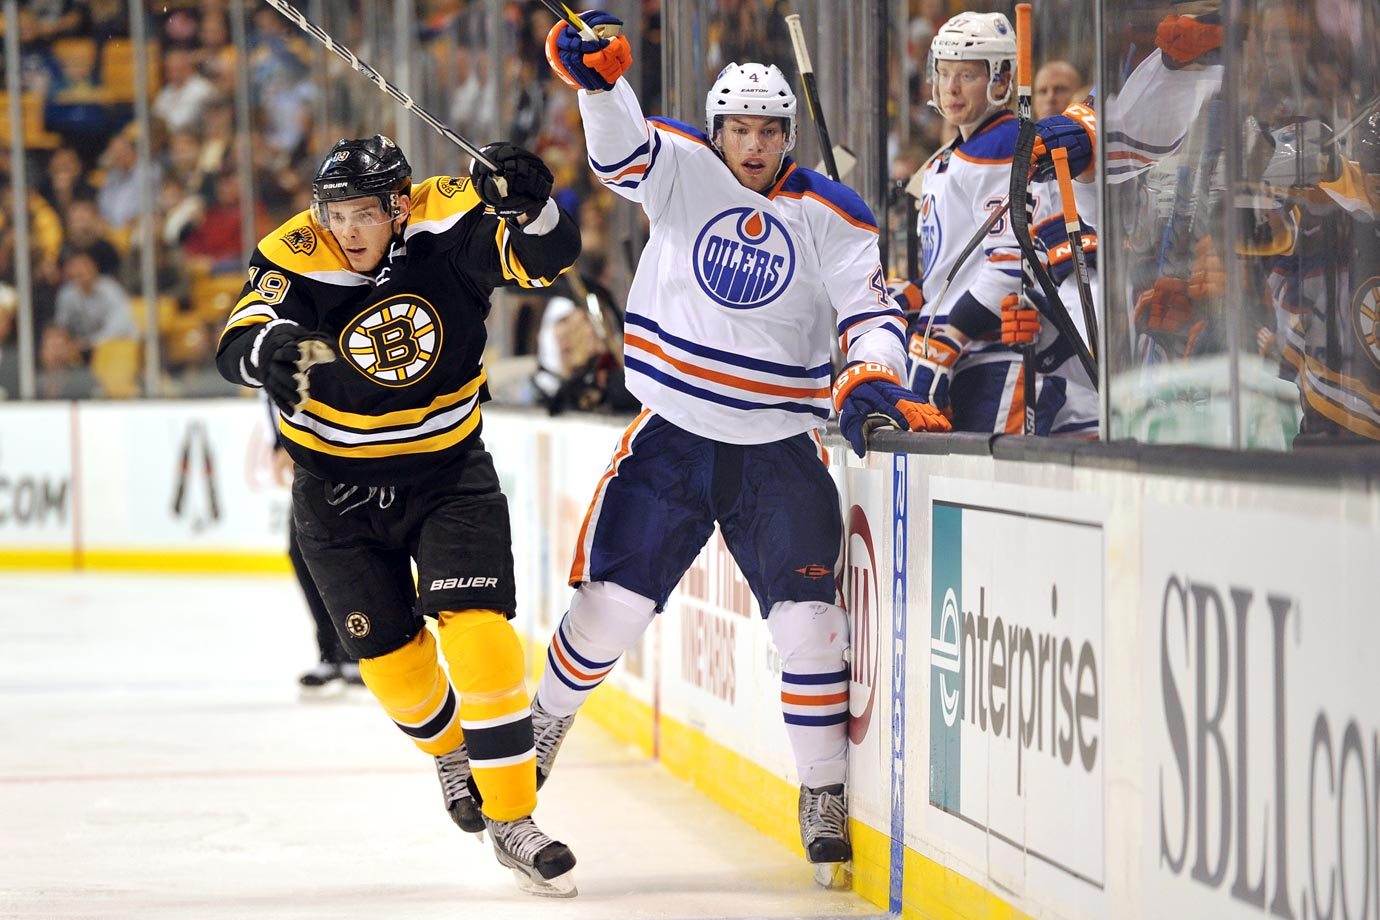 <p>The Oilers chose Taylor over Tyler (Seguin) in a draft that had two players worthy of being selected first overall. Hall won back-to-back Memorial Cups with the Windsor Spitfires (OHL), taking home MVP honors both times, and scored 22 goals in 65 games with Edmonton his rookie season. He was the fourth straight Ontario Hockey League player chosen with the No. 1 pick. — Notable picks: No. 2: Tyler Seguin, C, Boston Bruins | No. 4: Ryan Johanson, C, Columbus Blue Jackets | No. 7: Jeff Skinner, C, Carolina Hurricanes | No. 16: Vladimir Tarasenko, RW, St. Louis Blues | No. 187: Frederik Andersen, G, Carolina Hurricanes</p>